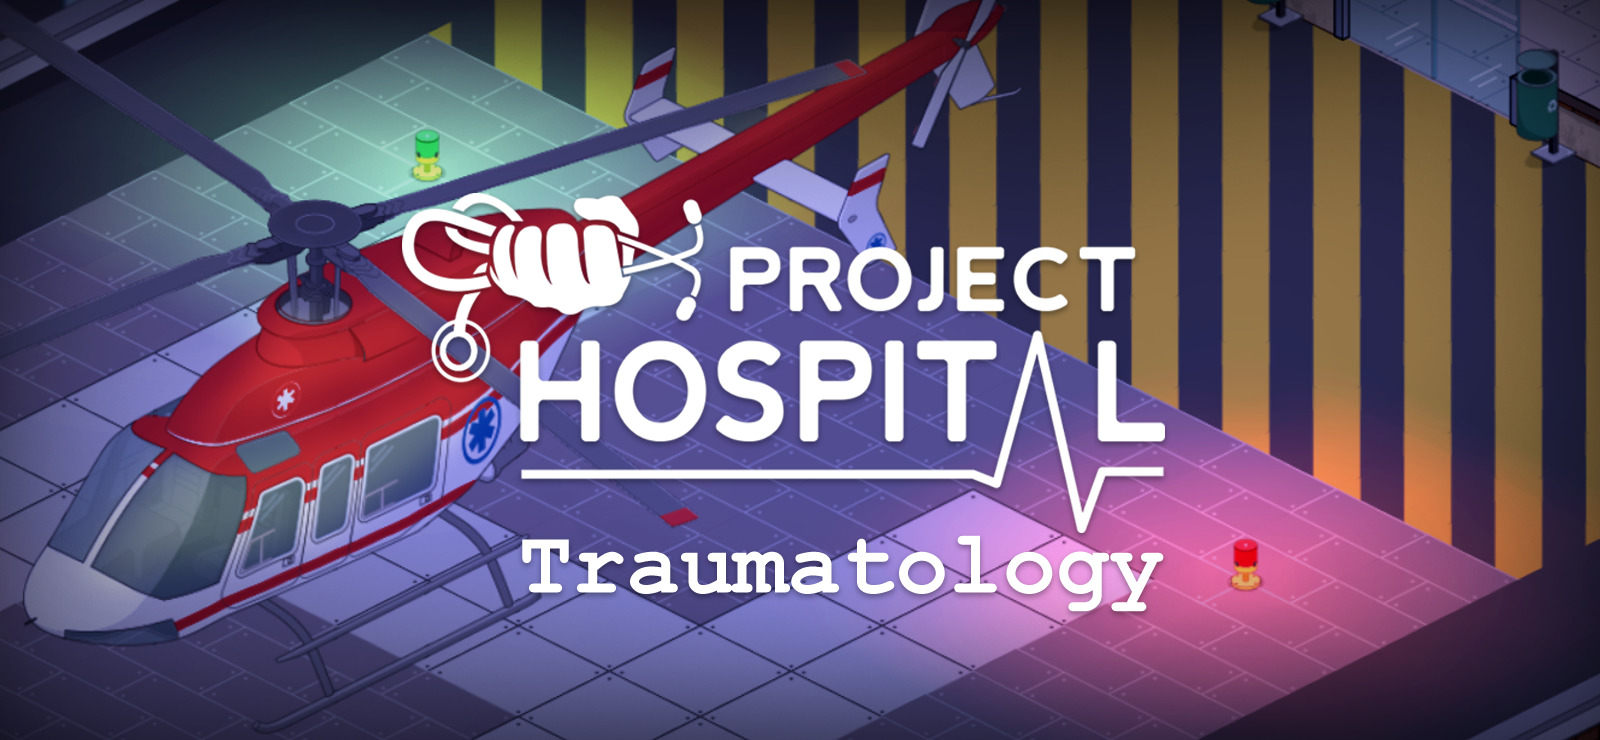 Project hospital - traumatology department download free trial